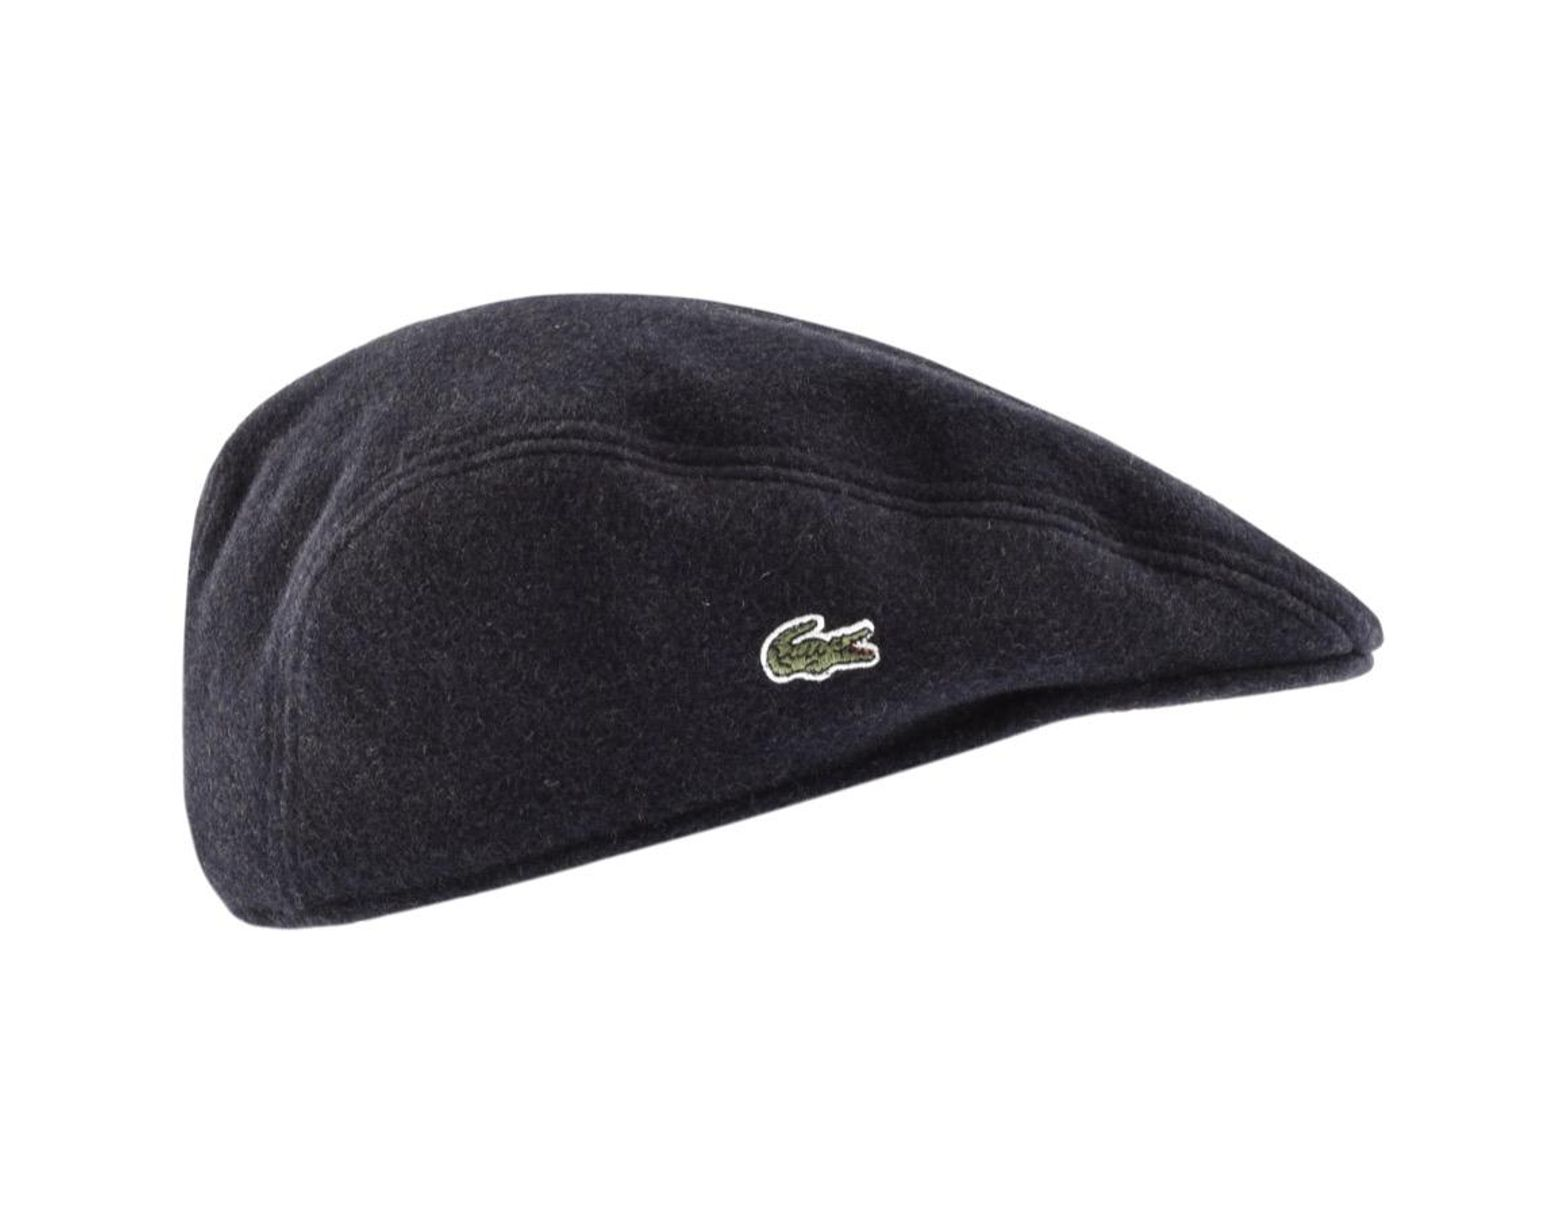 bc3b720e Lacoste Flat Cap Navy in Blue for Men - Lyst